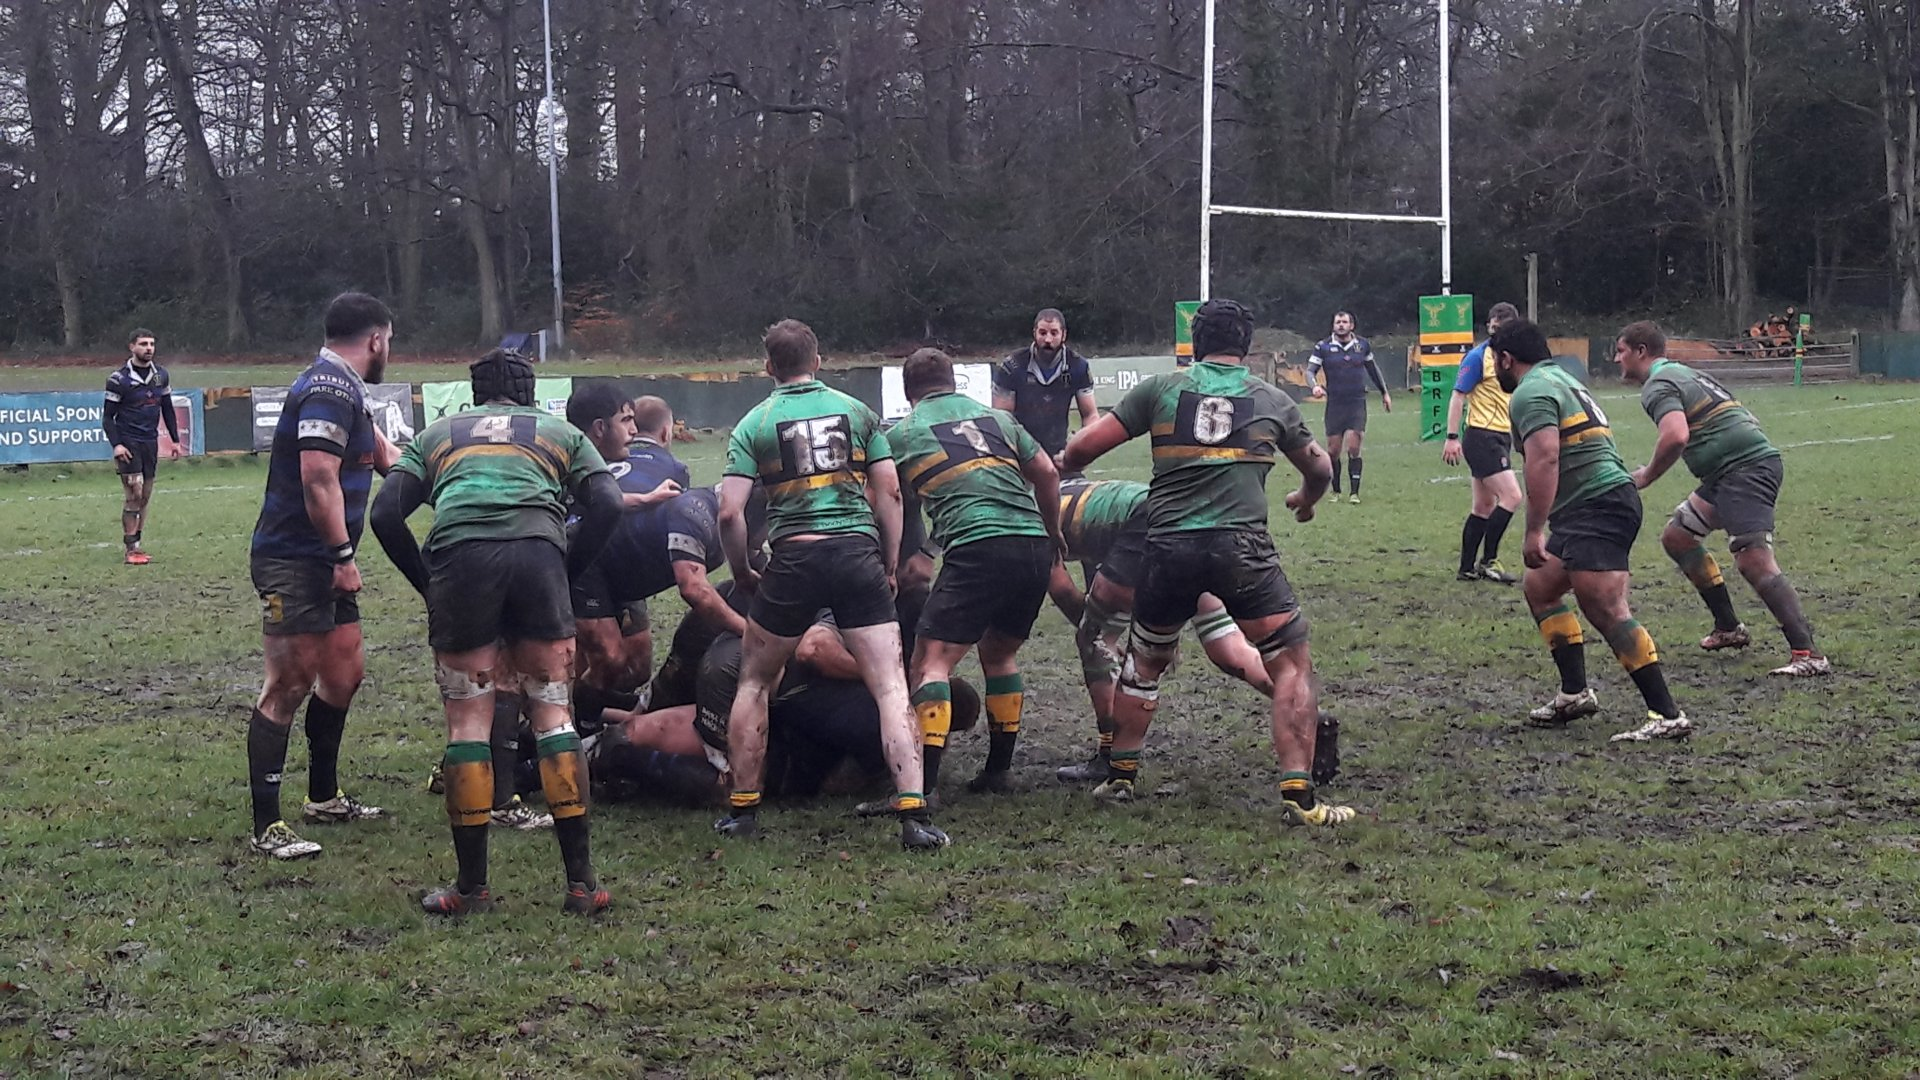 Bracknell (green) lost 23-19 to Dings Crusaders